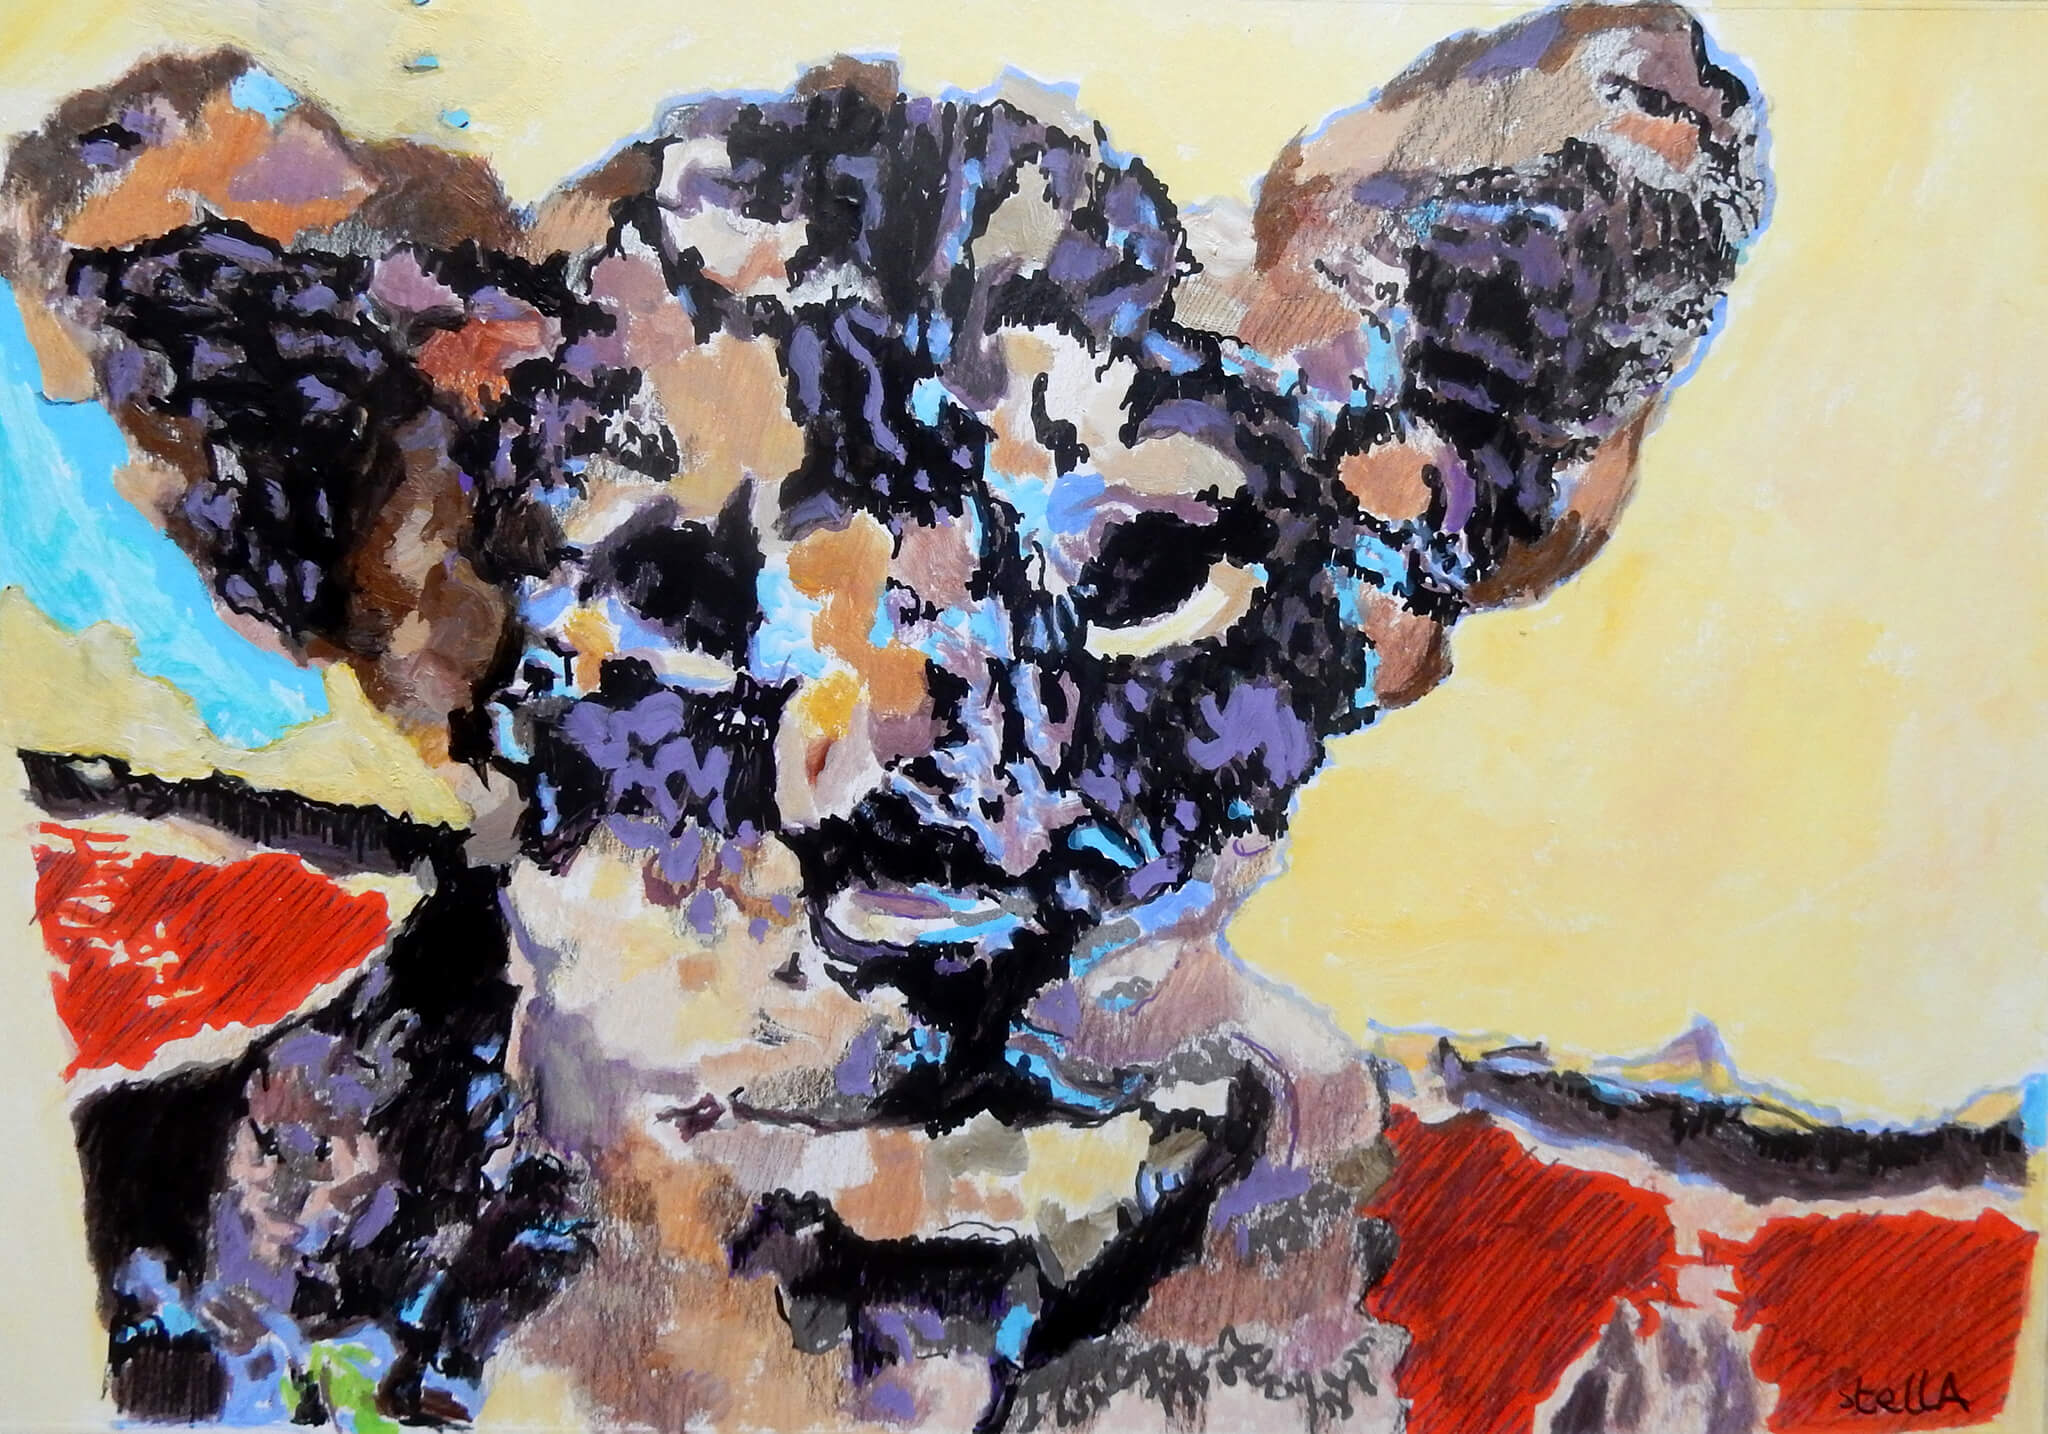 Thai tiger cub acrylic on paper animal portrait artwork by Stella Tooth.